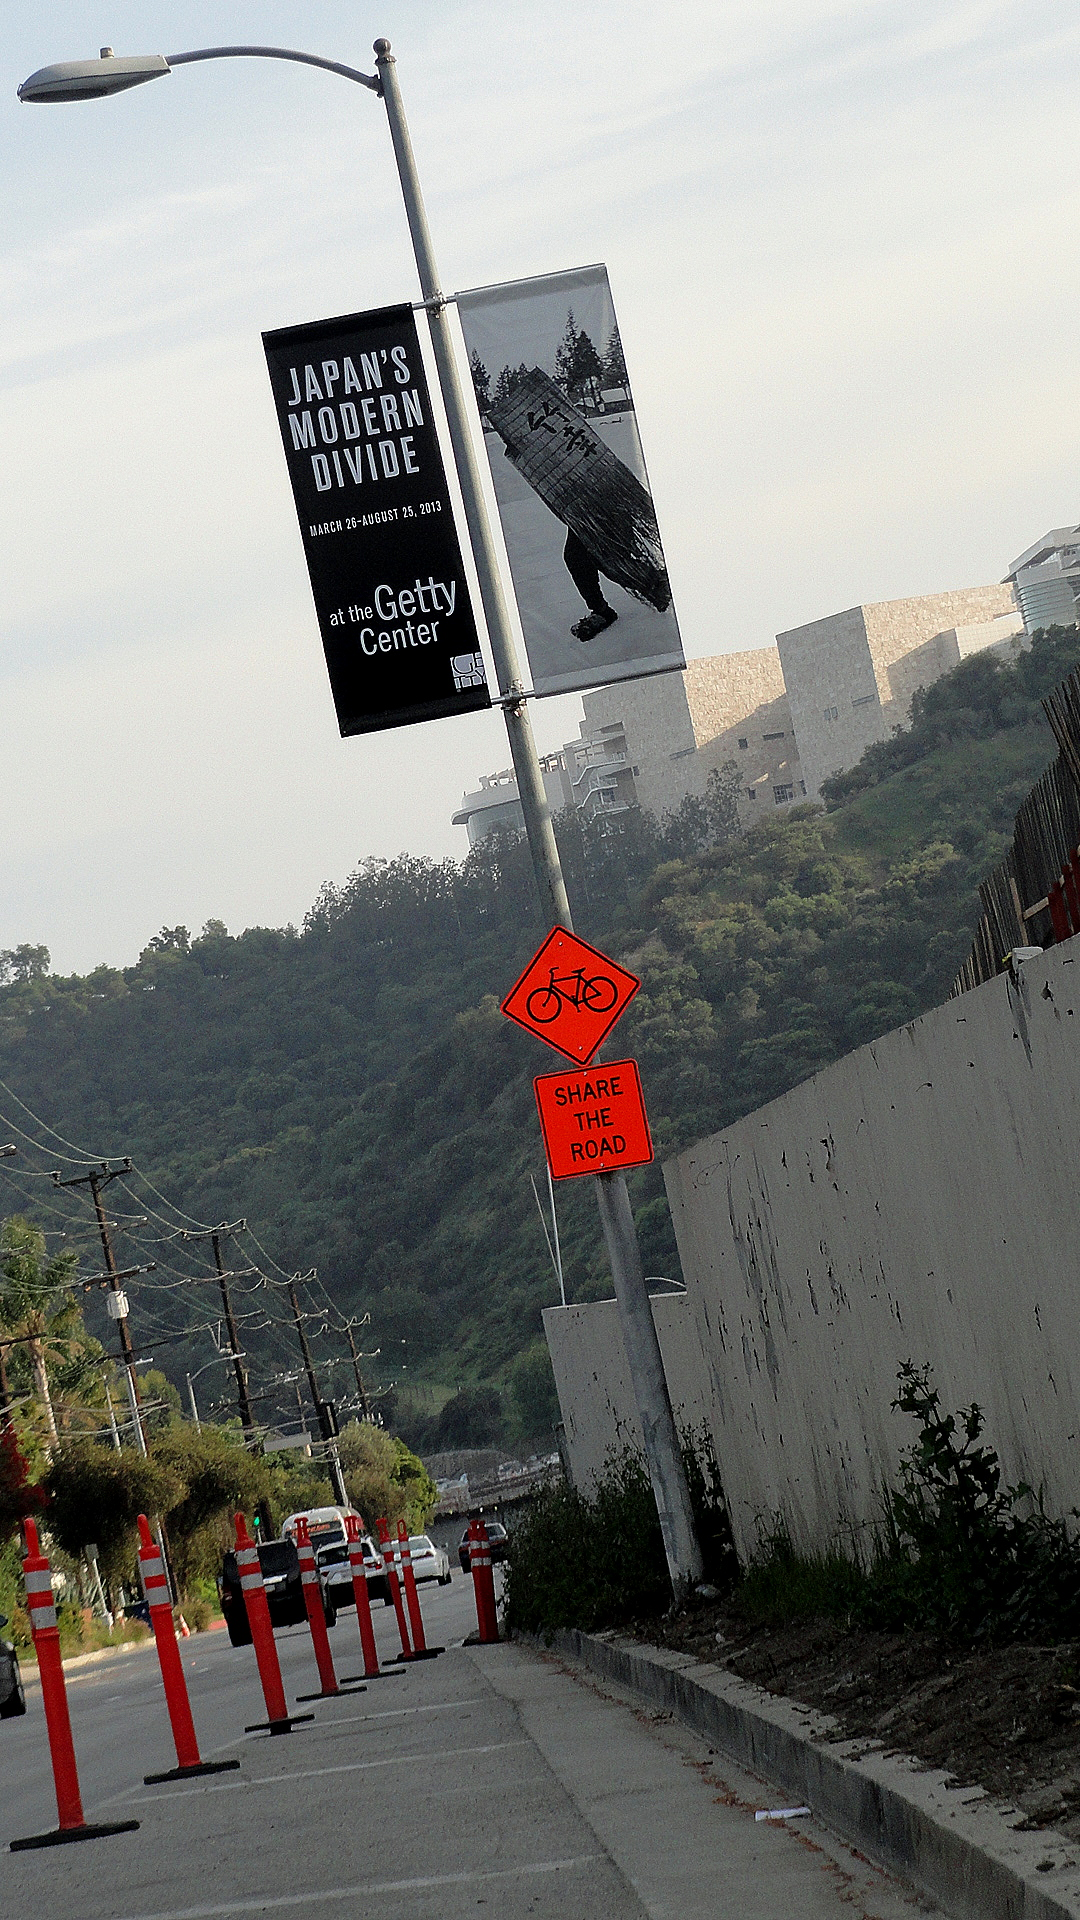 Share the Road - Getty Ctr